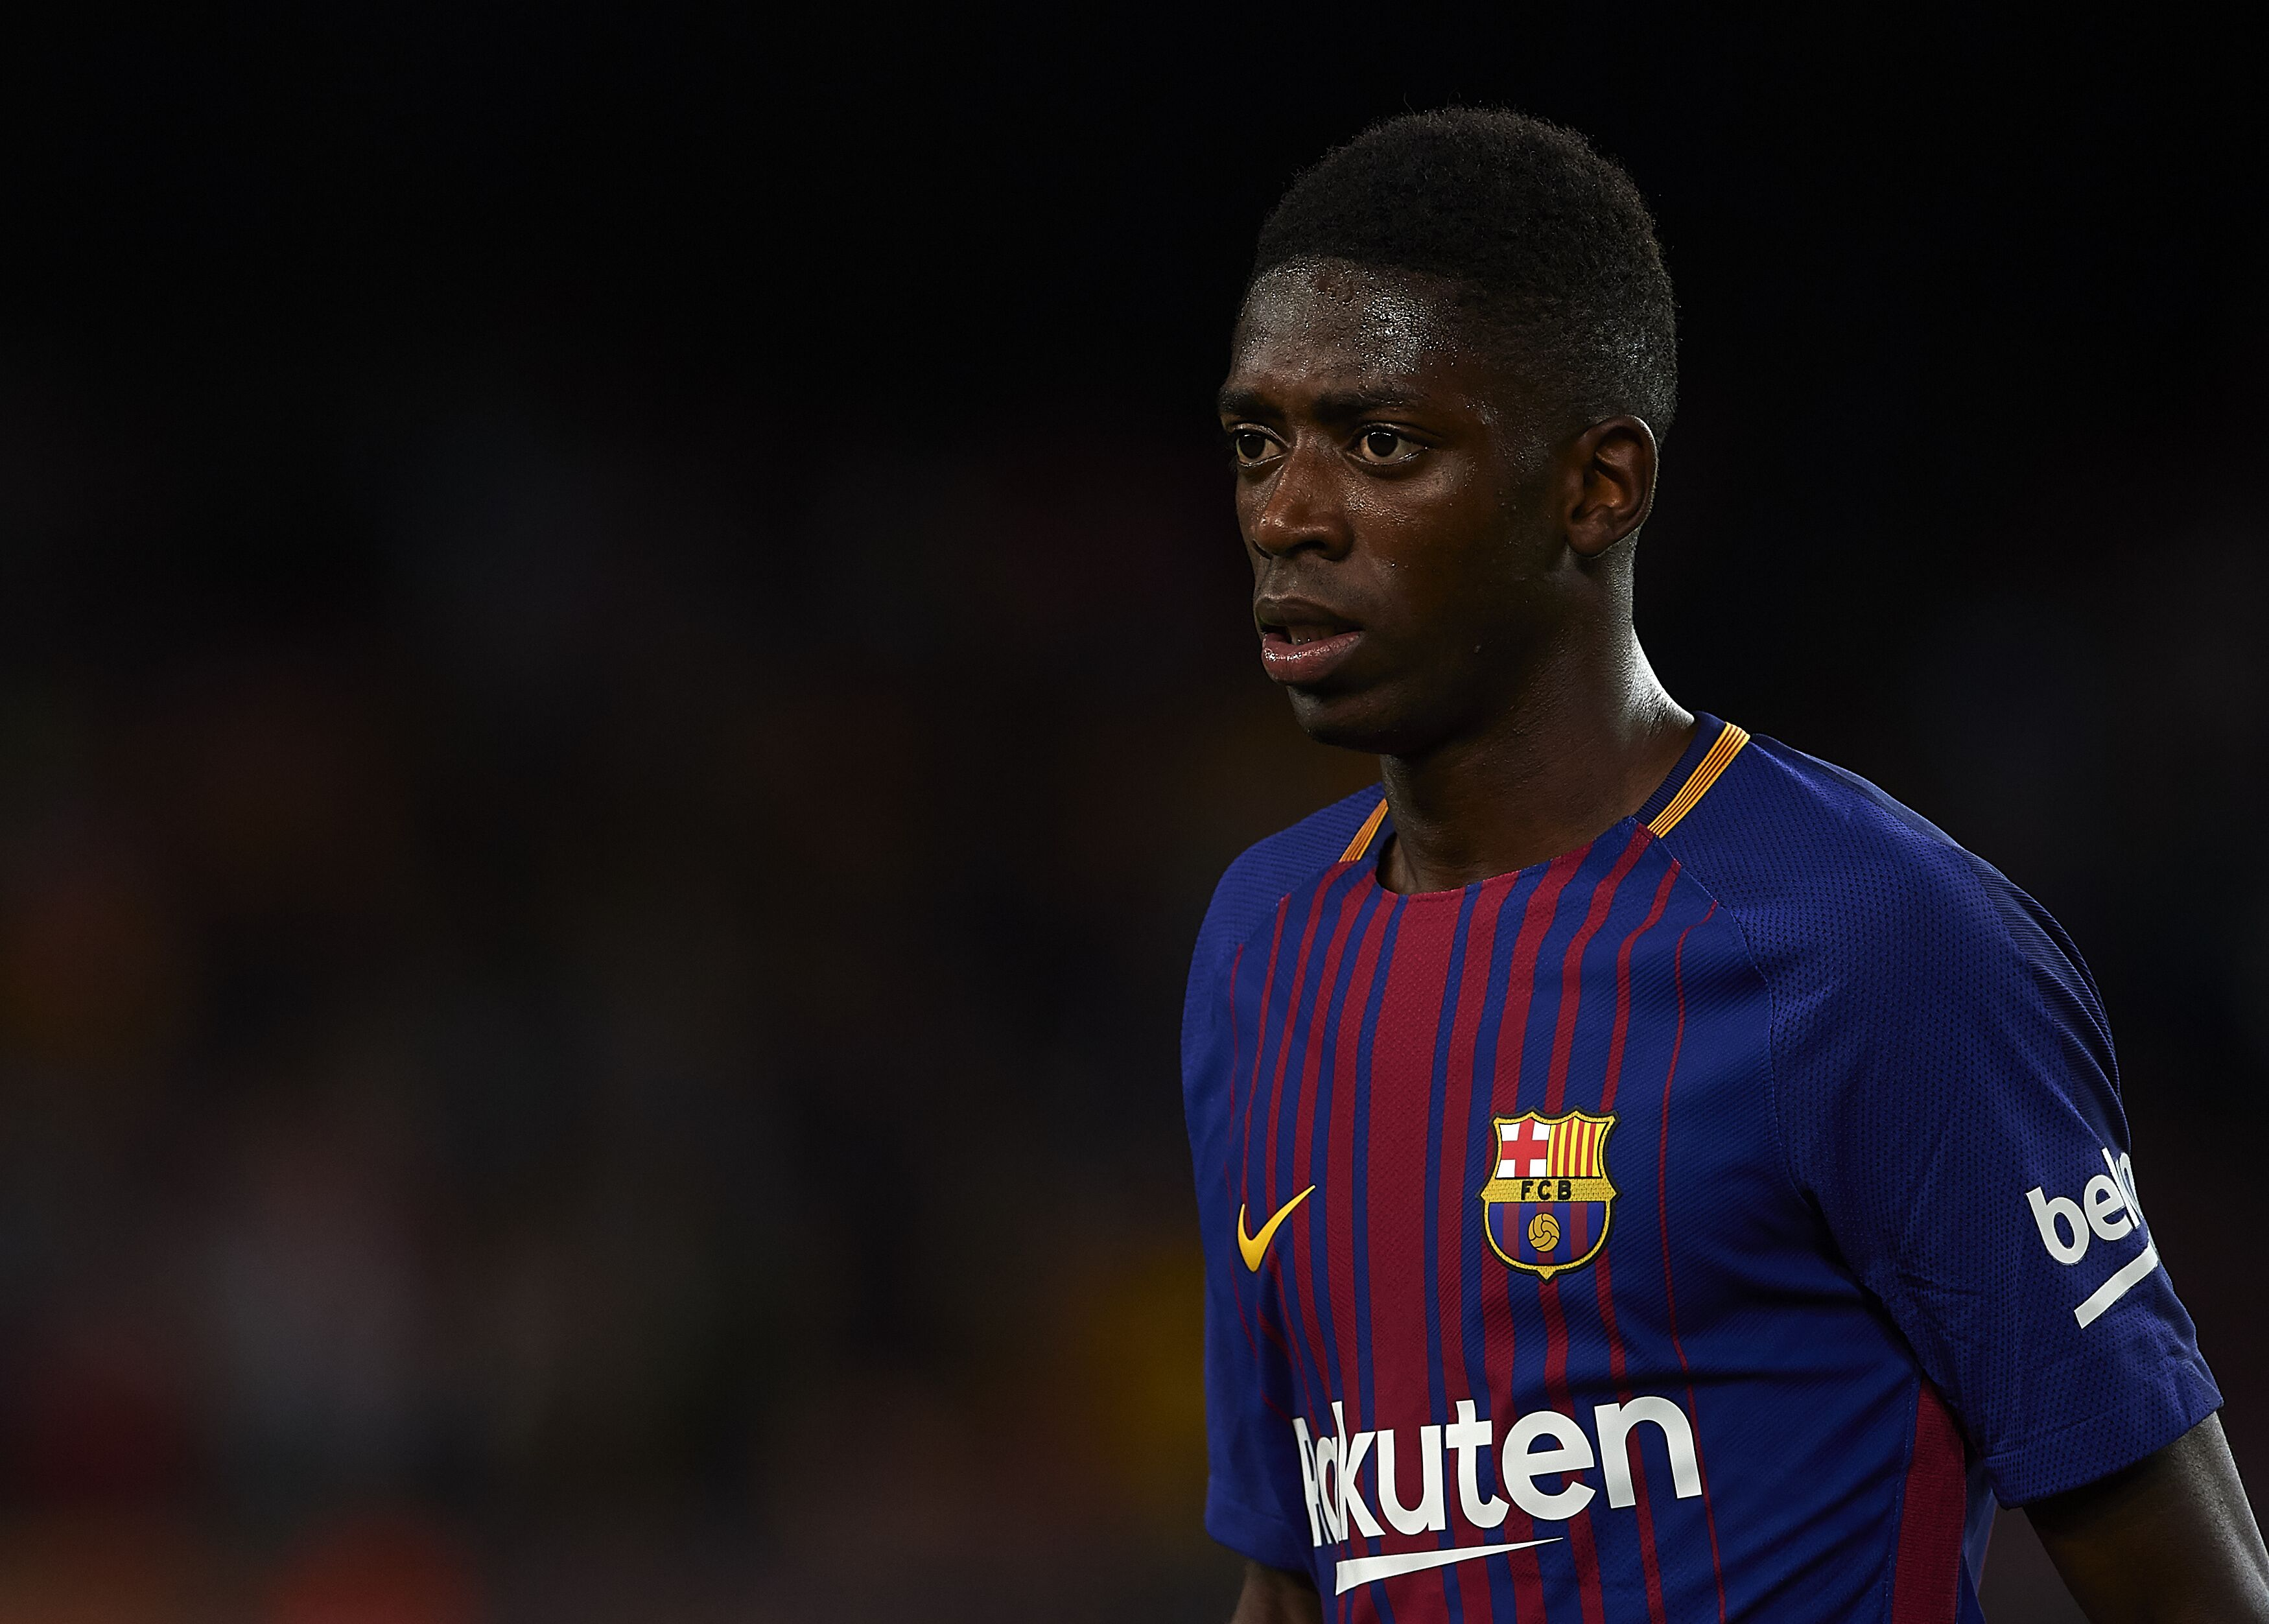 Borussia Dortmund wanted Ousmane Dembele to stay for another year